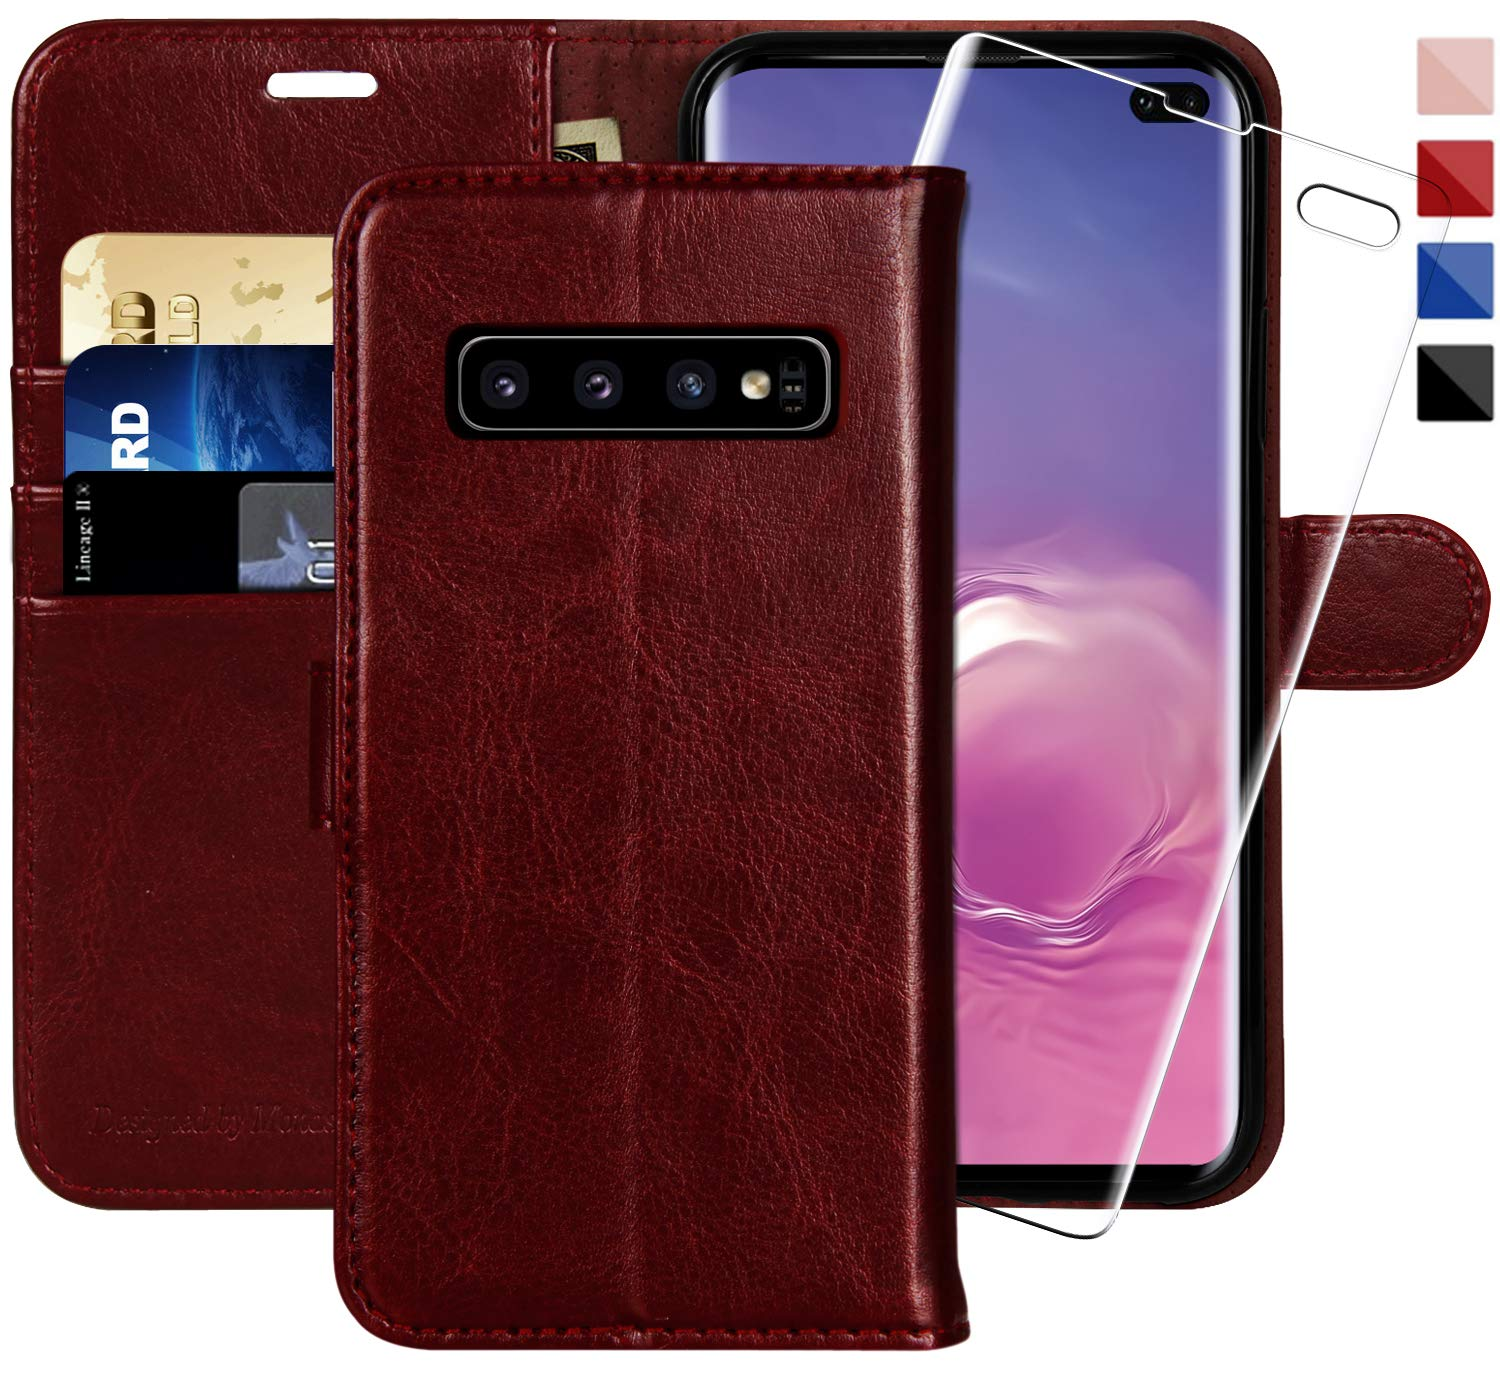 Galaxy S10 Plus Wallet Case, 6.4 inch,MONASAY [Included Screen Protector] Flip Folio Leather Cell Phone Cover with Credit Card Holder for Samsung Galaxy S10 Plus by MONASAY